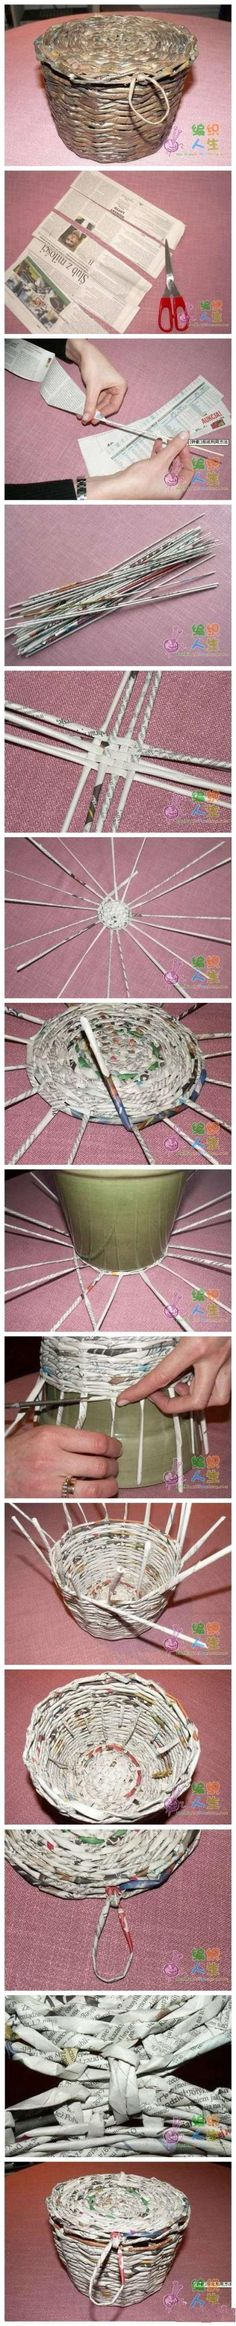 DIY Tutorial: DIY Weaving / DIY Simple Newspaper Weave Basket - Bead&Cord